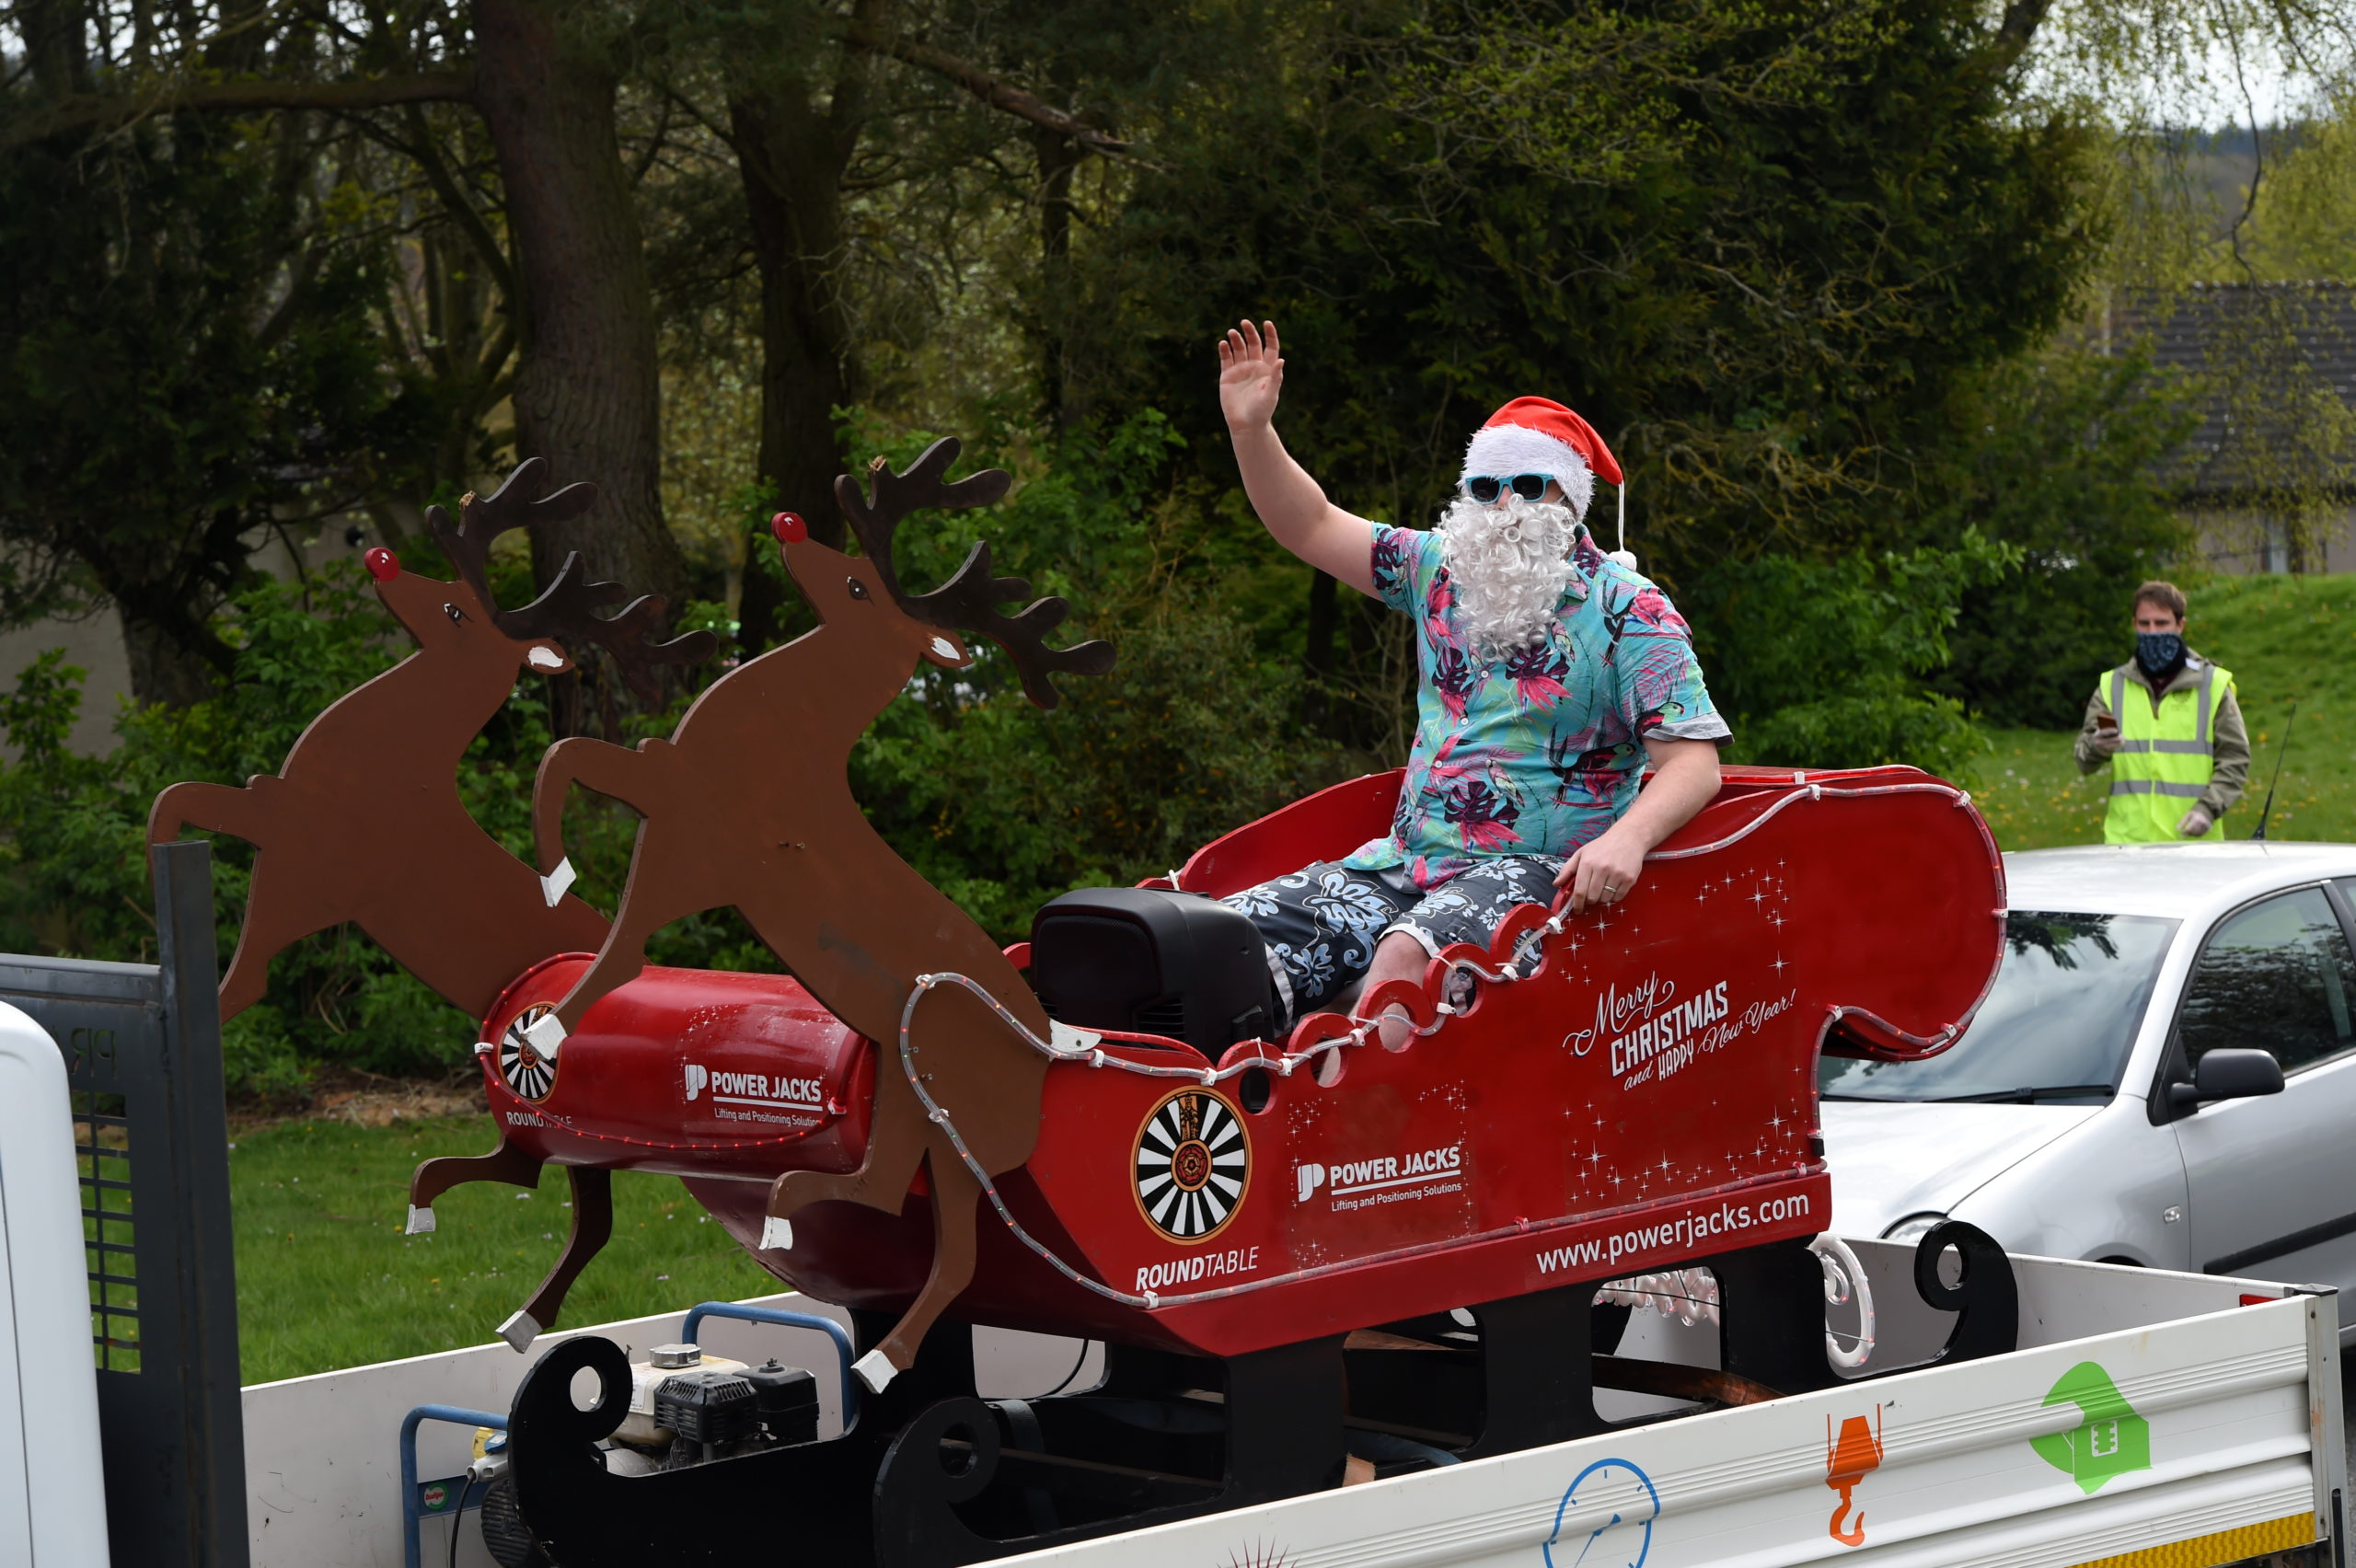 Santa visited Ellon over the weekend to pick up donations.